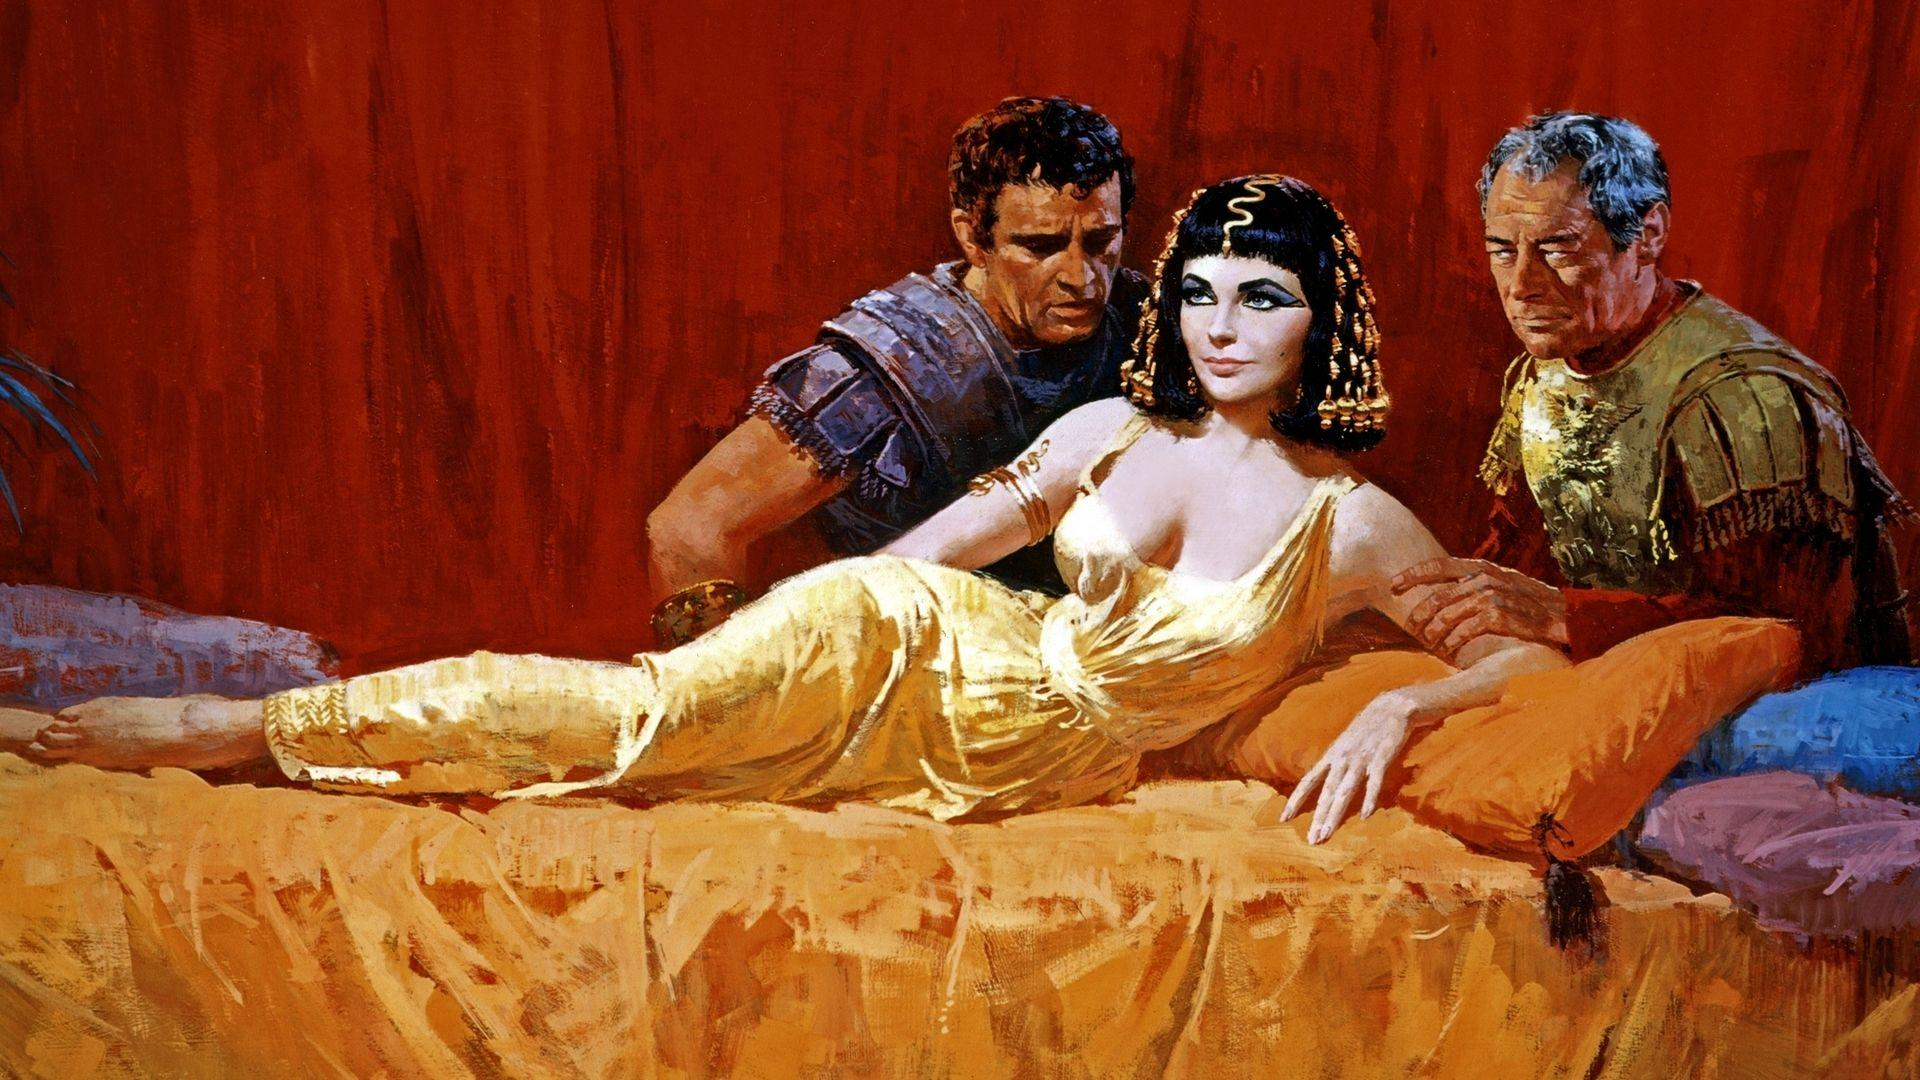 cleopatra the movie 1 adjusted for inflation, cleopatra is one of the most expensive movies ever made originally the film had a modest budget of $2 million, but it eventually ballooned.